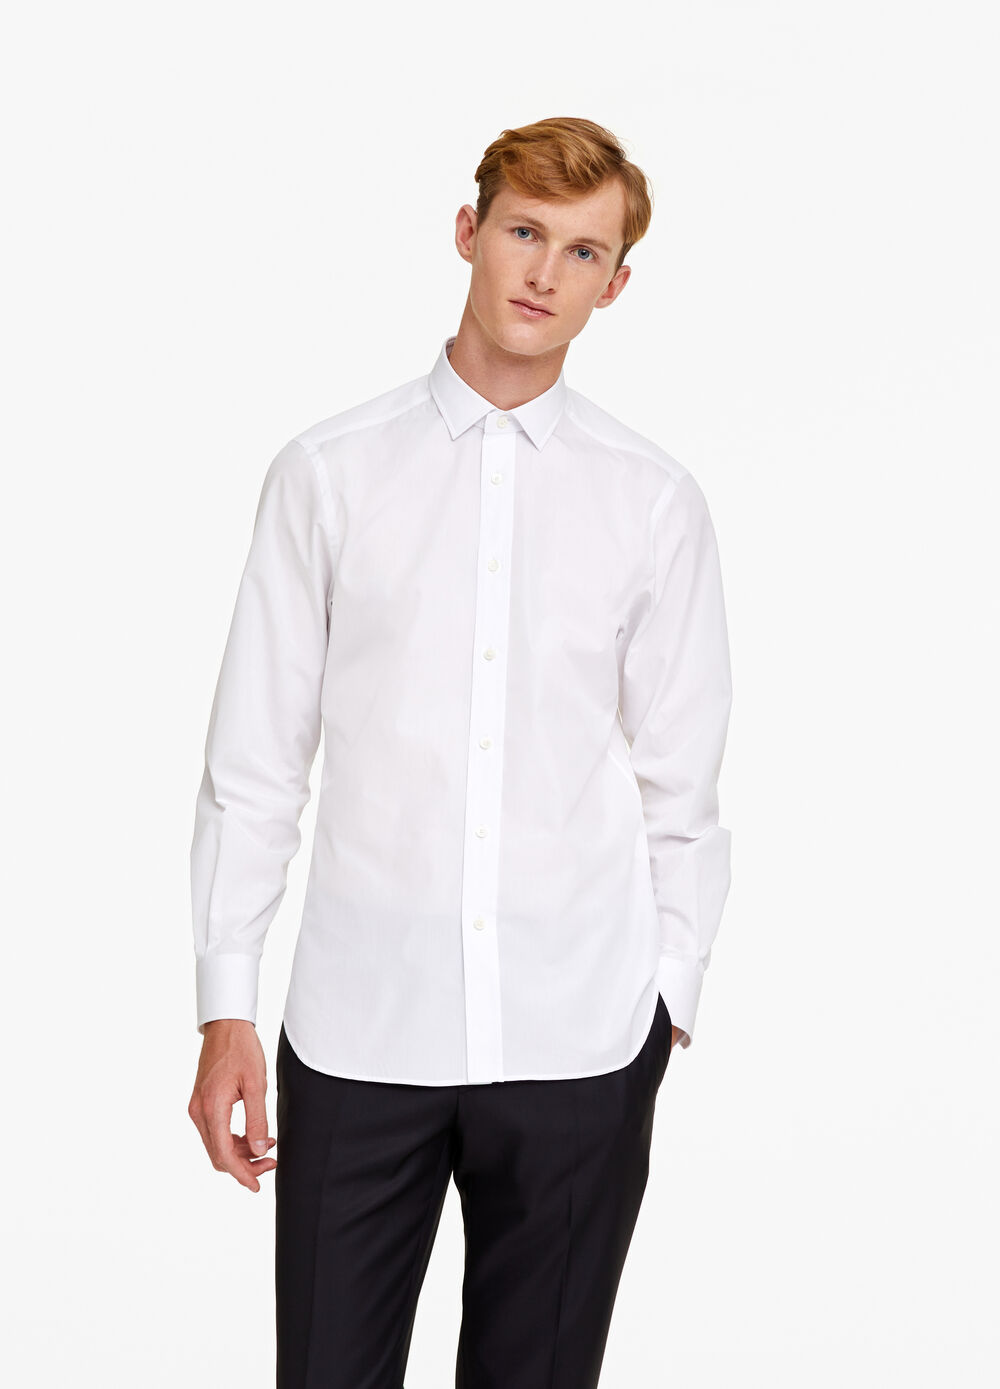 OVS Arts of Italy shirt in 100% cotton